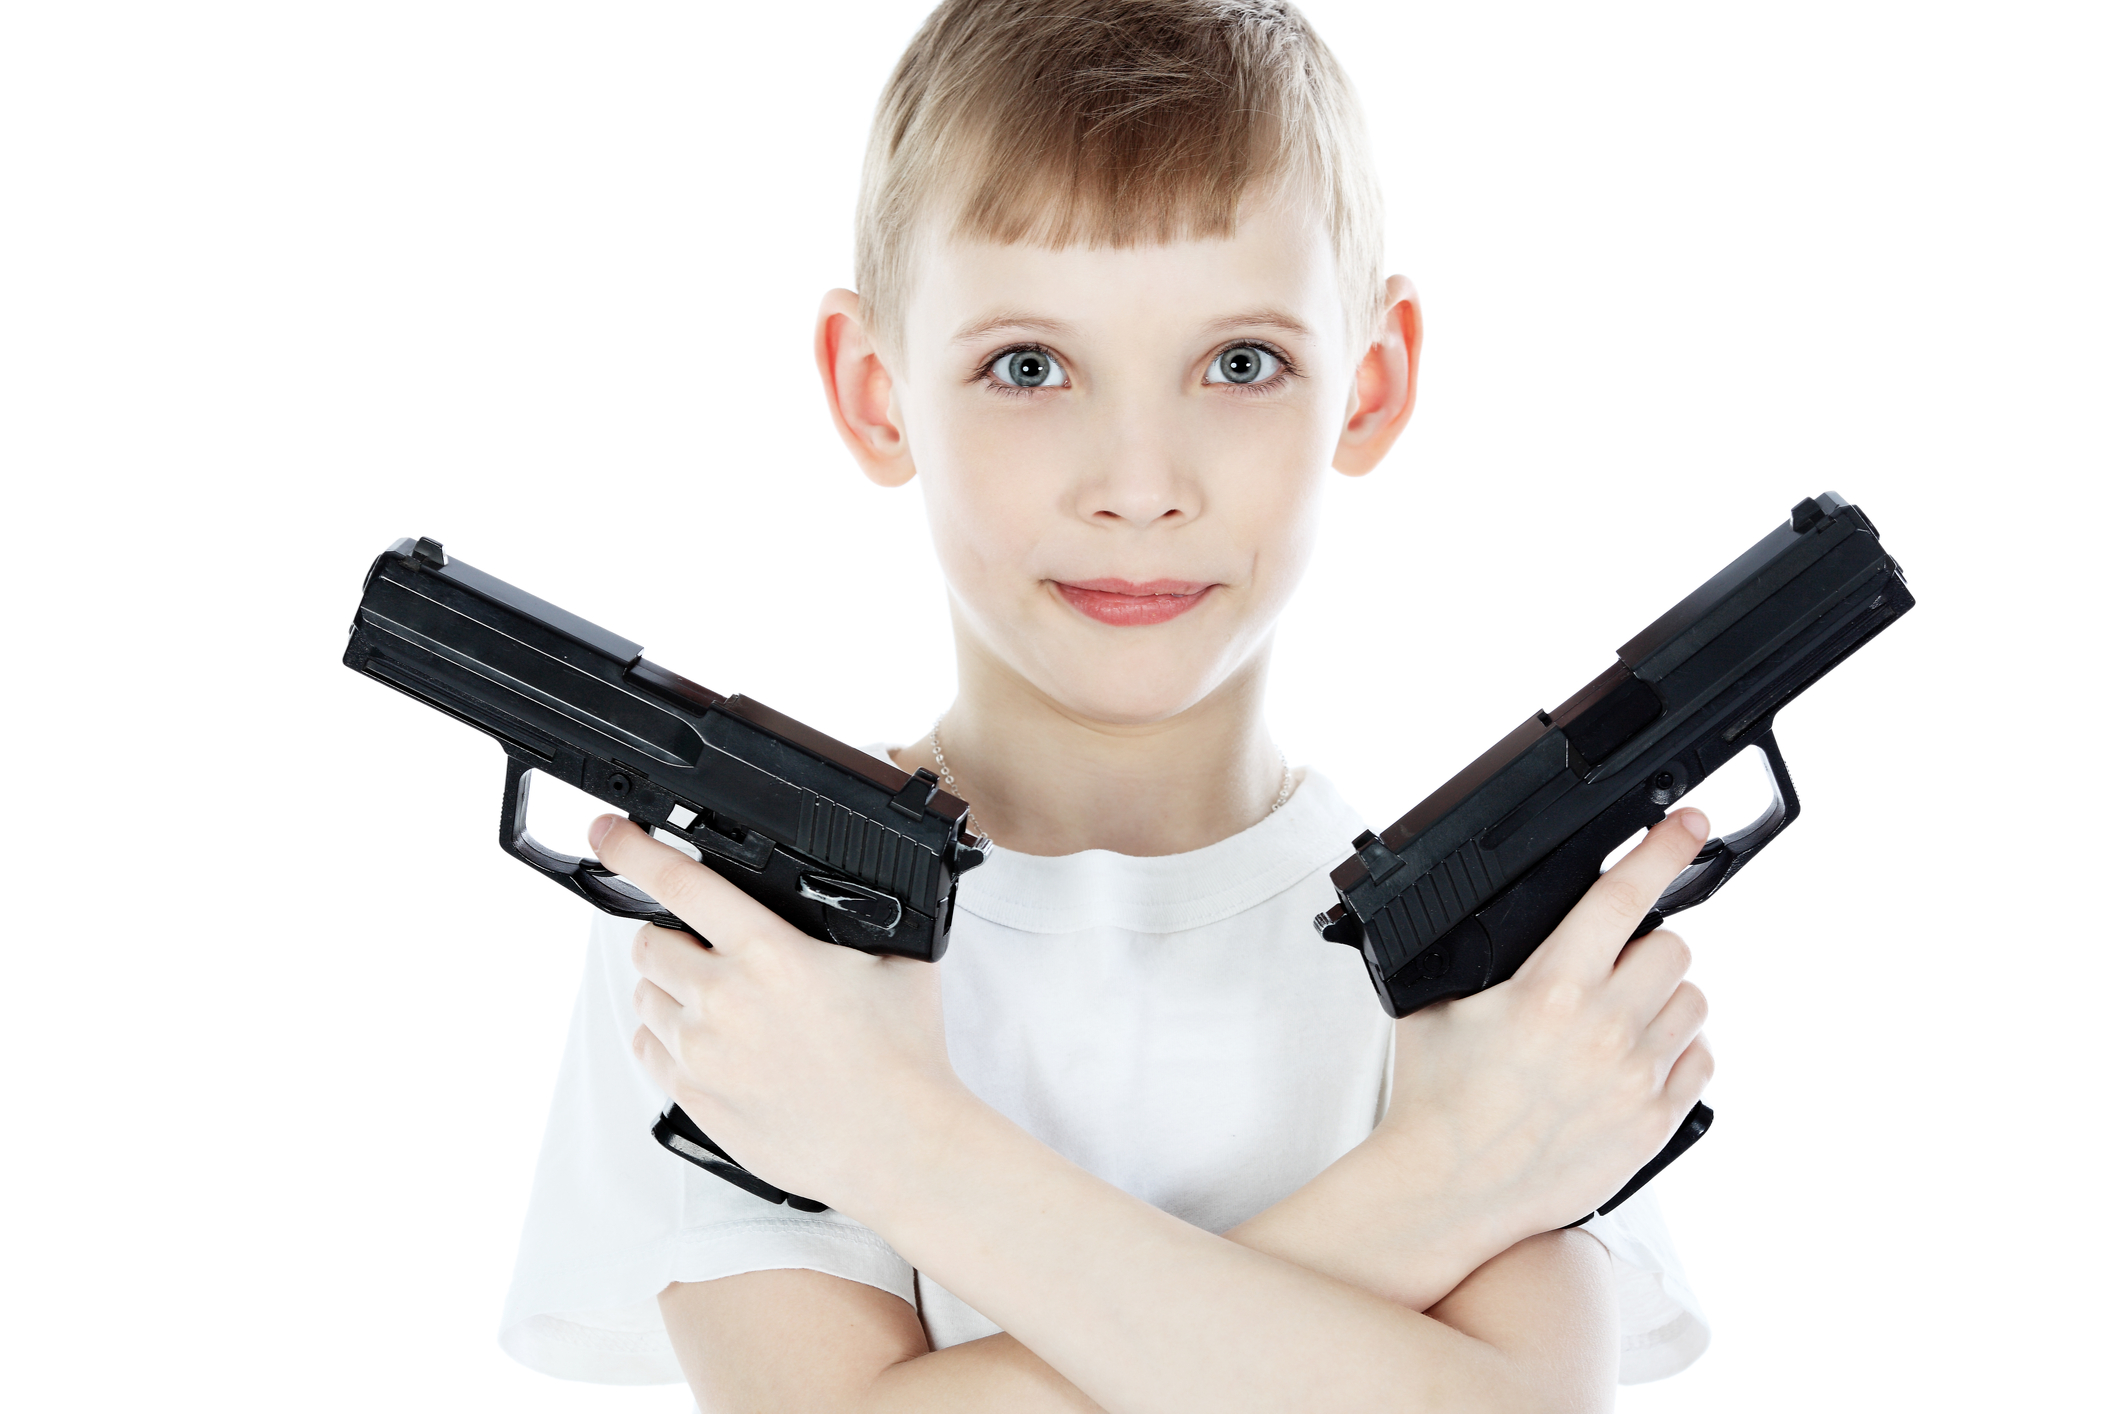 image of a child holding 2 toy guns